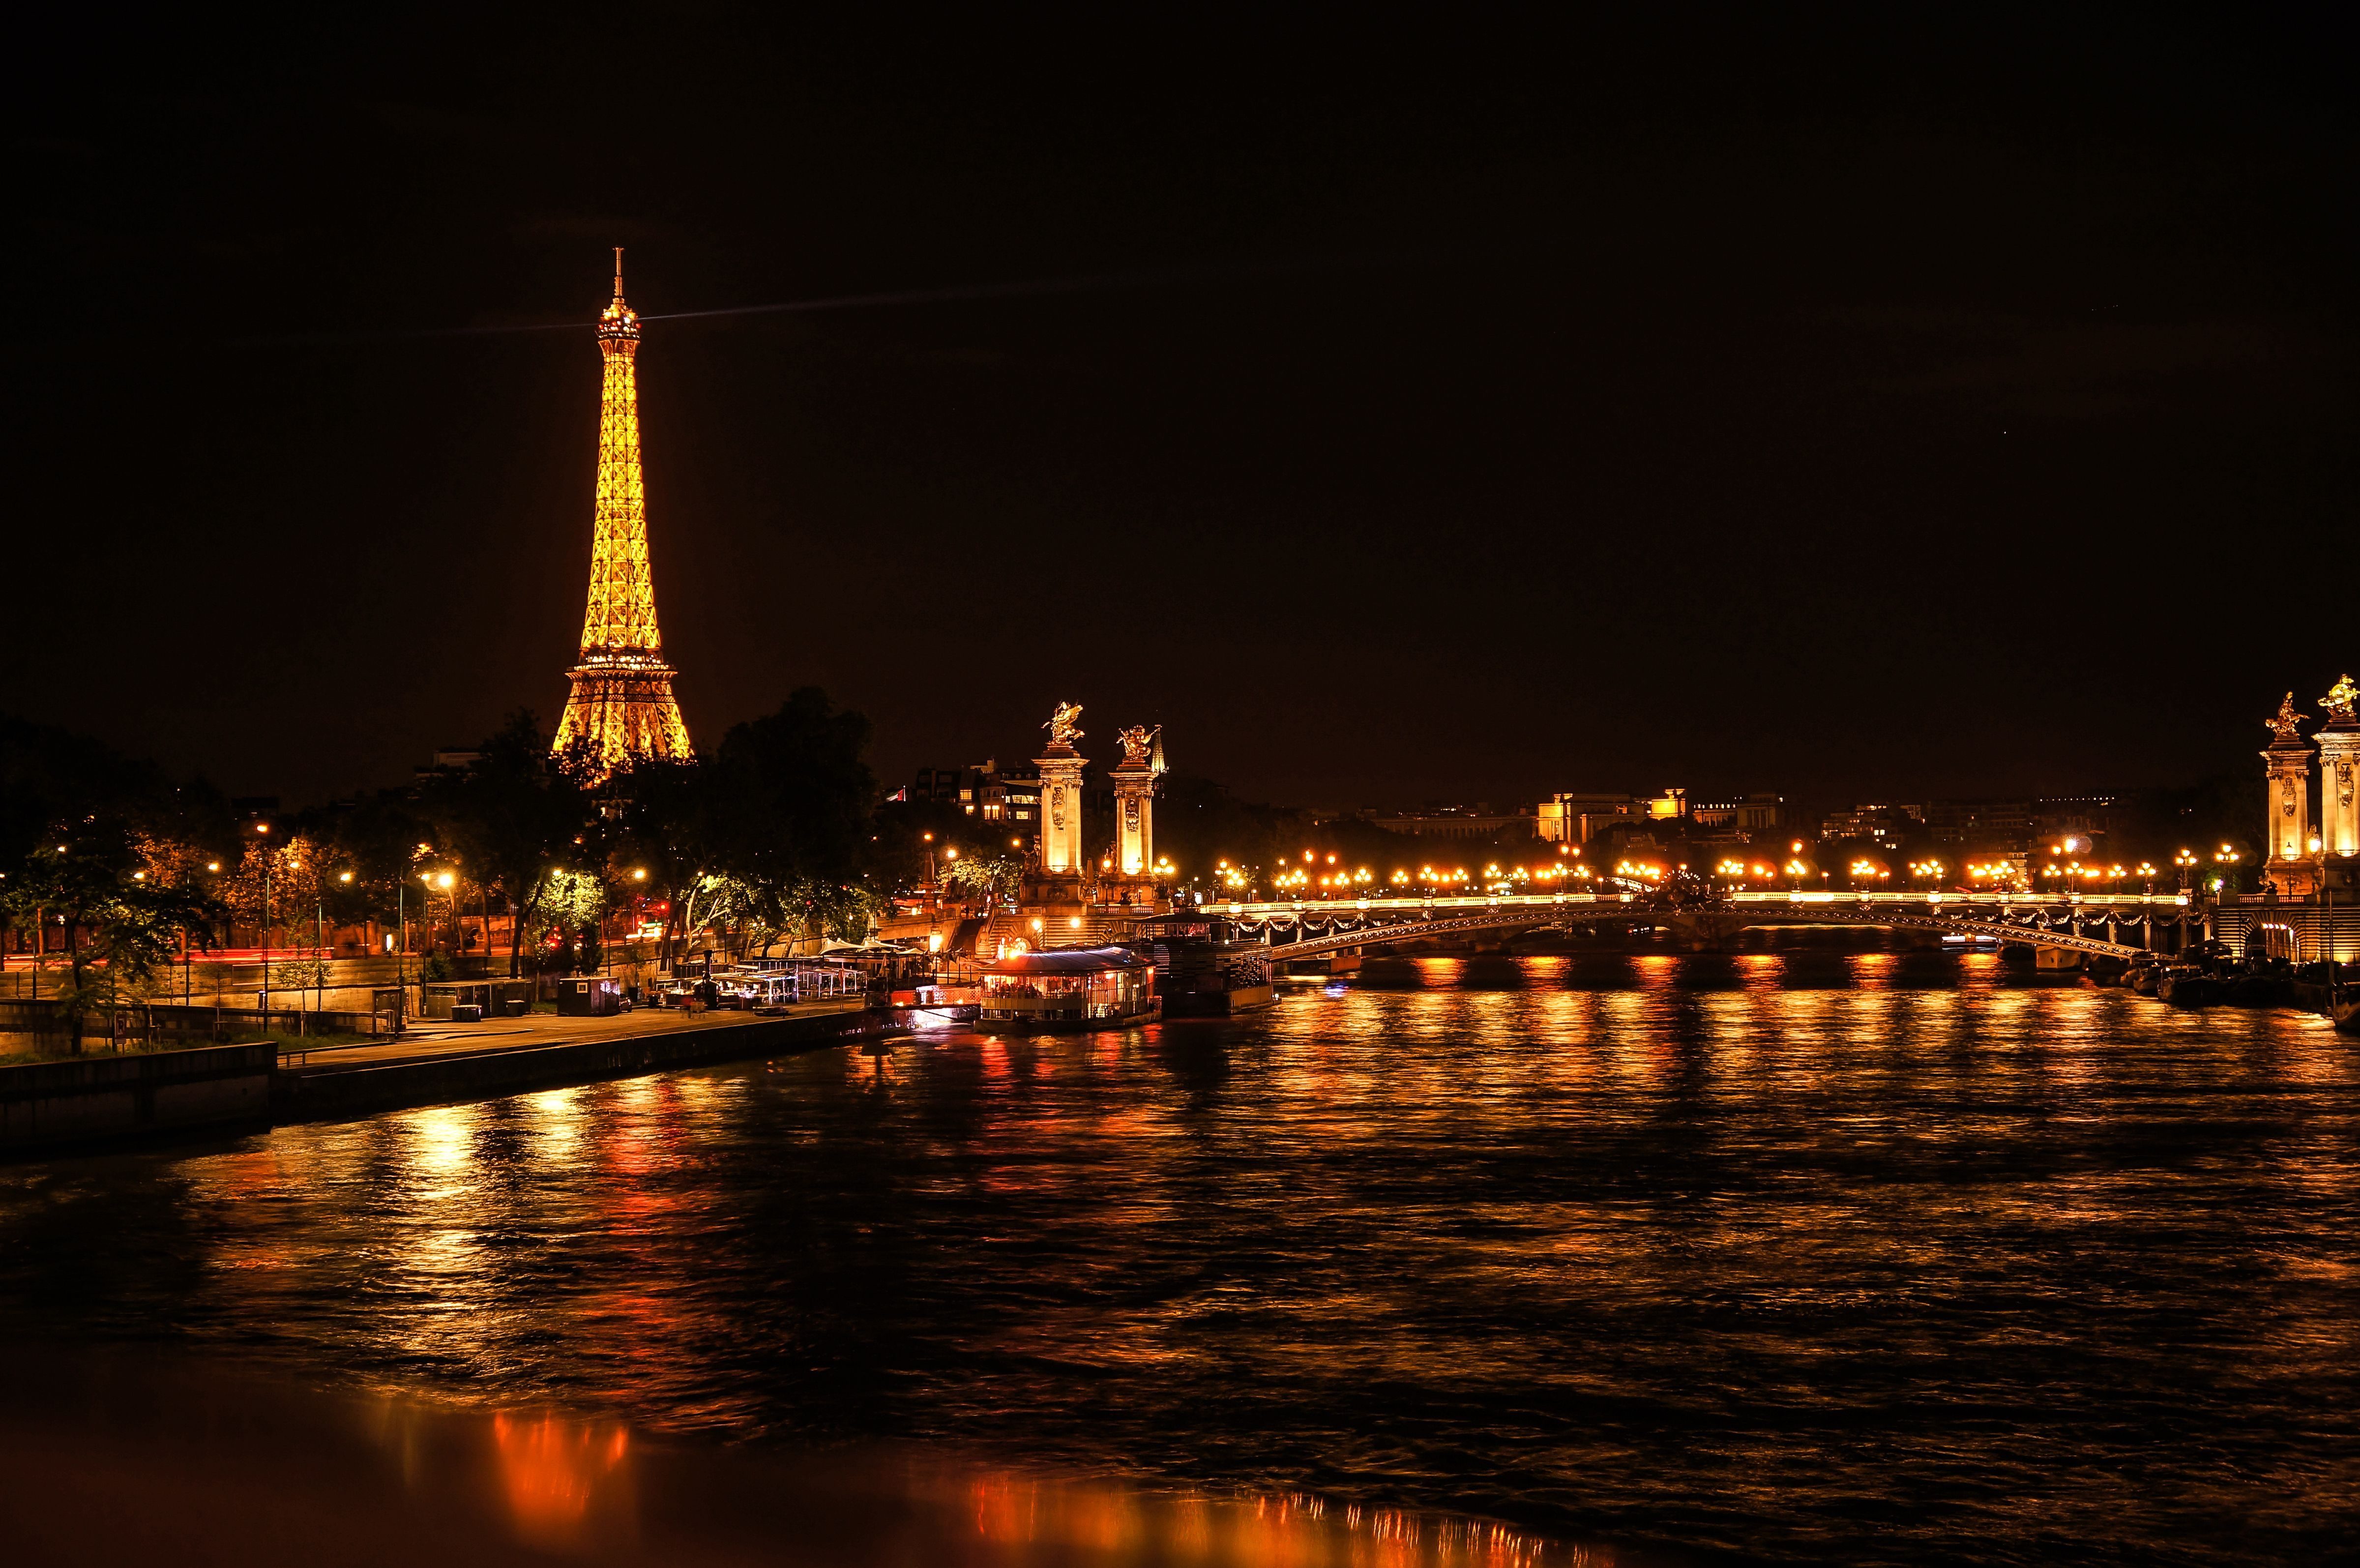 Eiffel Tower At Night By Juan Antonio Varetto Rendic Reflections